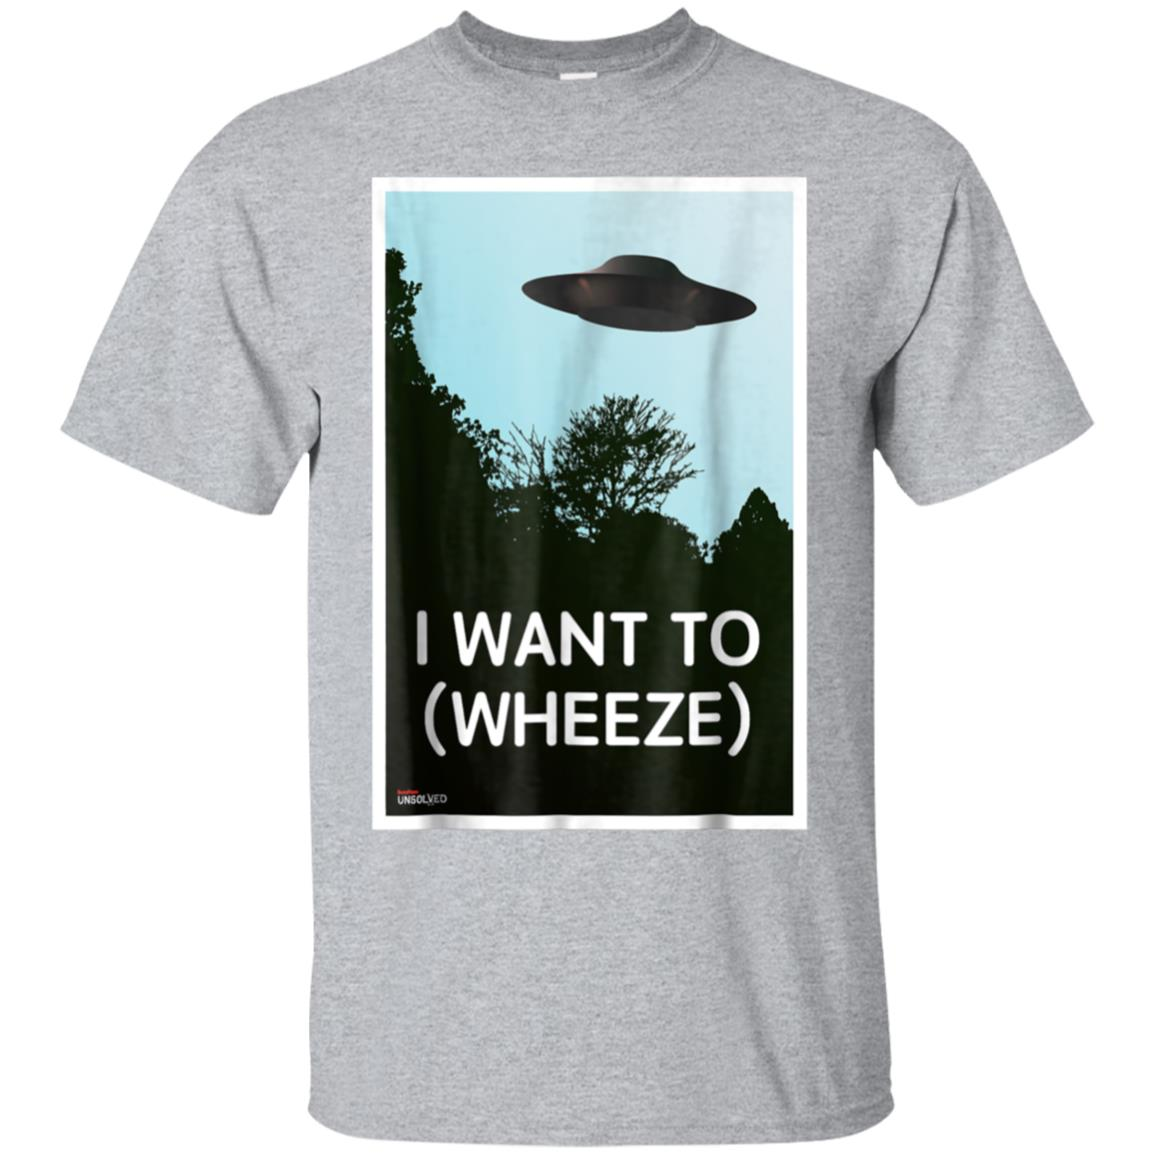 BuzzFeed Unsolved I Want To (wheeze) T-Shirt 99promocode